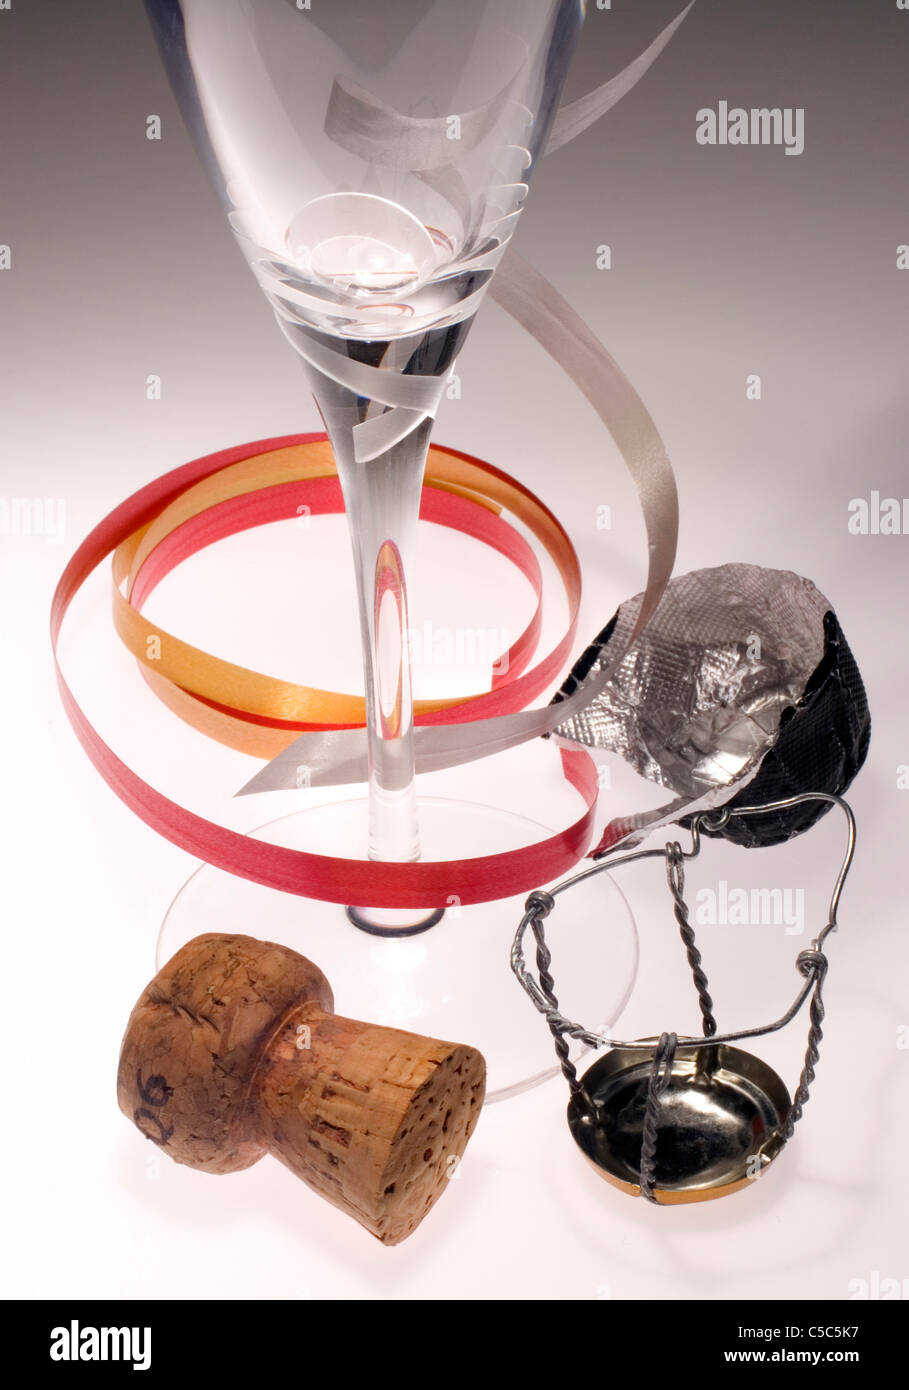 Close-up of champagne flute, cork and seal over white background - Stock Image